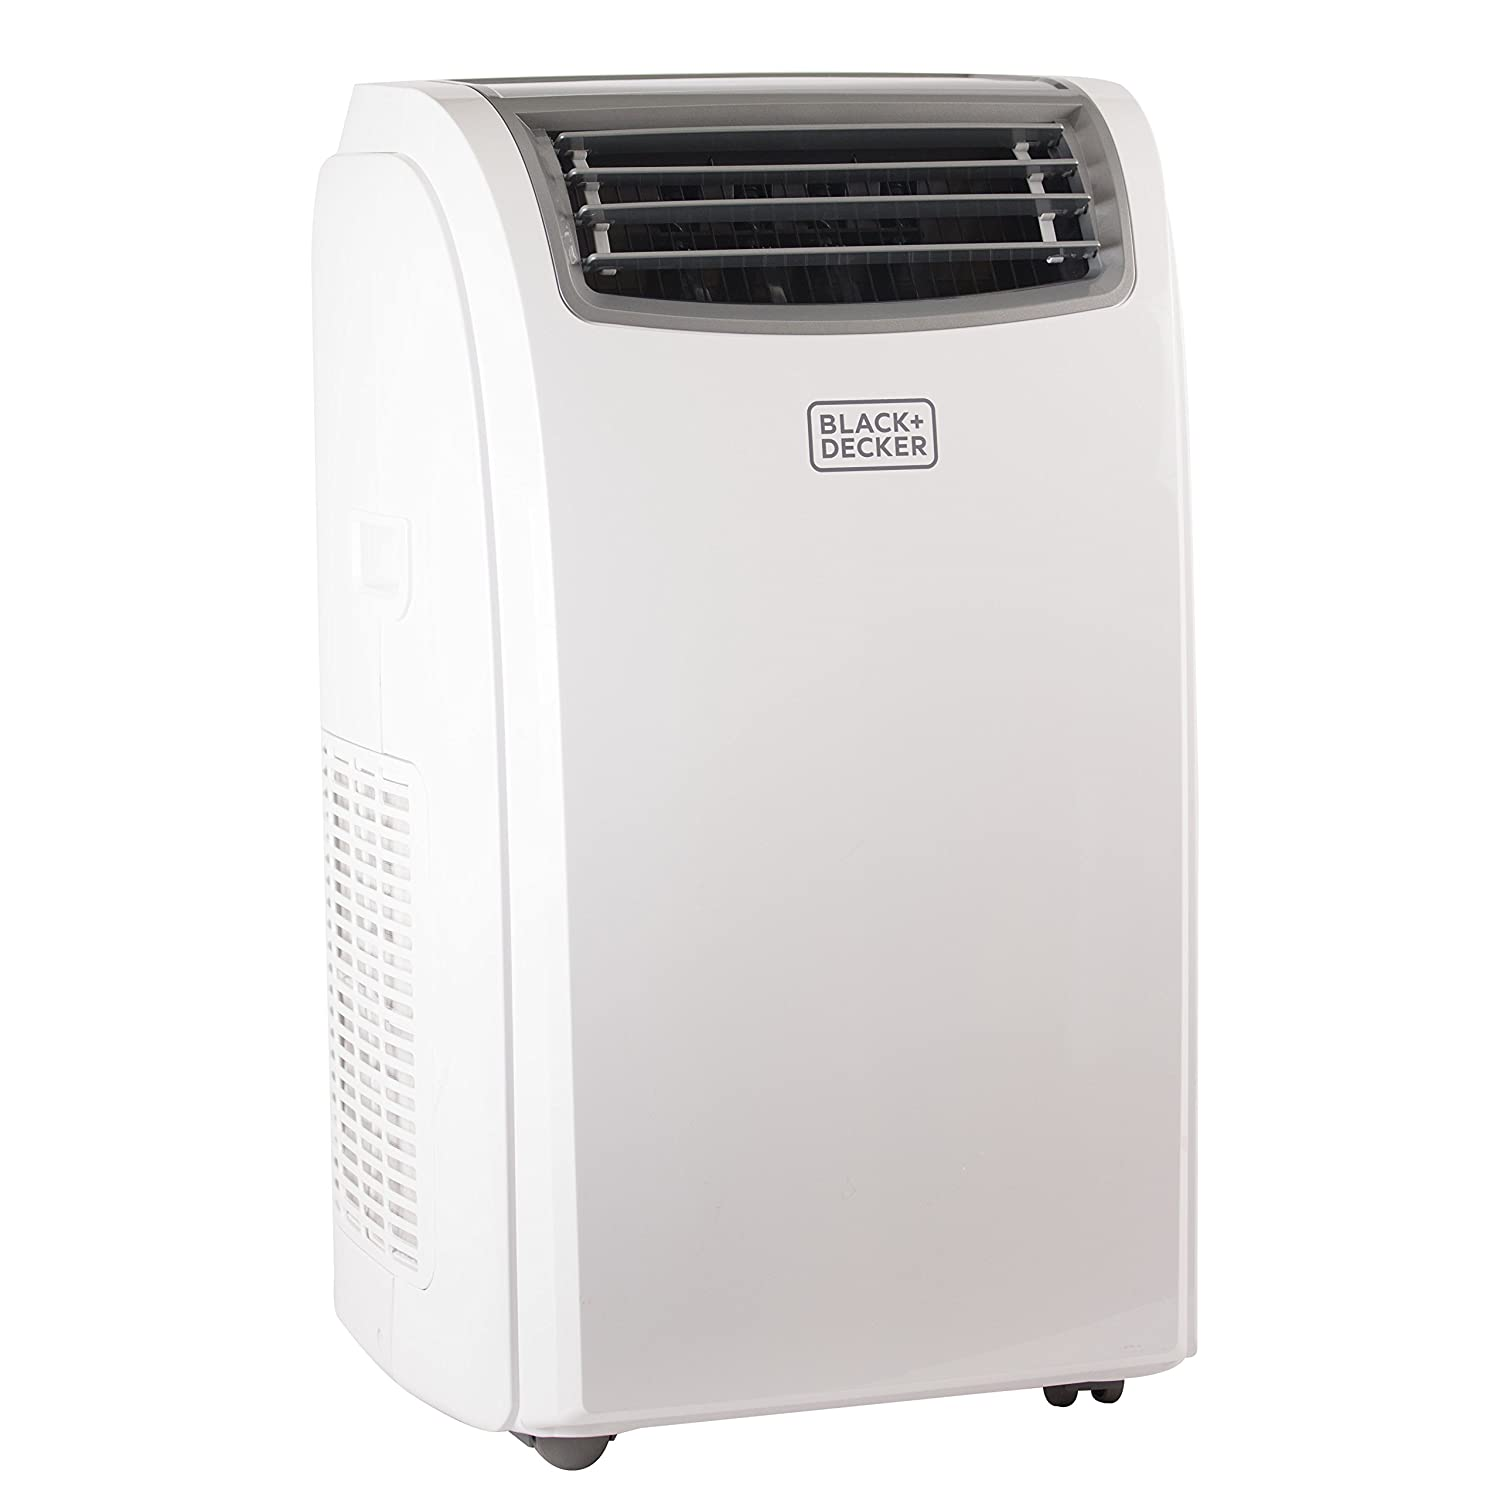 Black + Decker 12000 BTU Portable Air Conditioner Unit + 10000 BTU Heater, Remote, LED Display, Window Vent Kit, 4 Caster Wheels, White